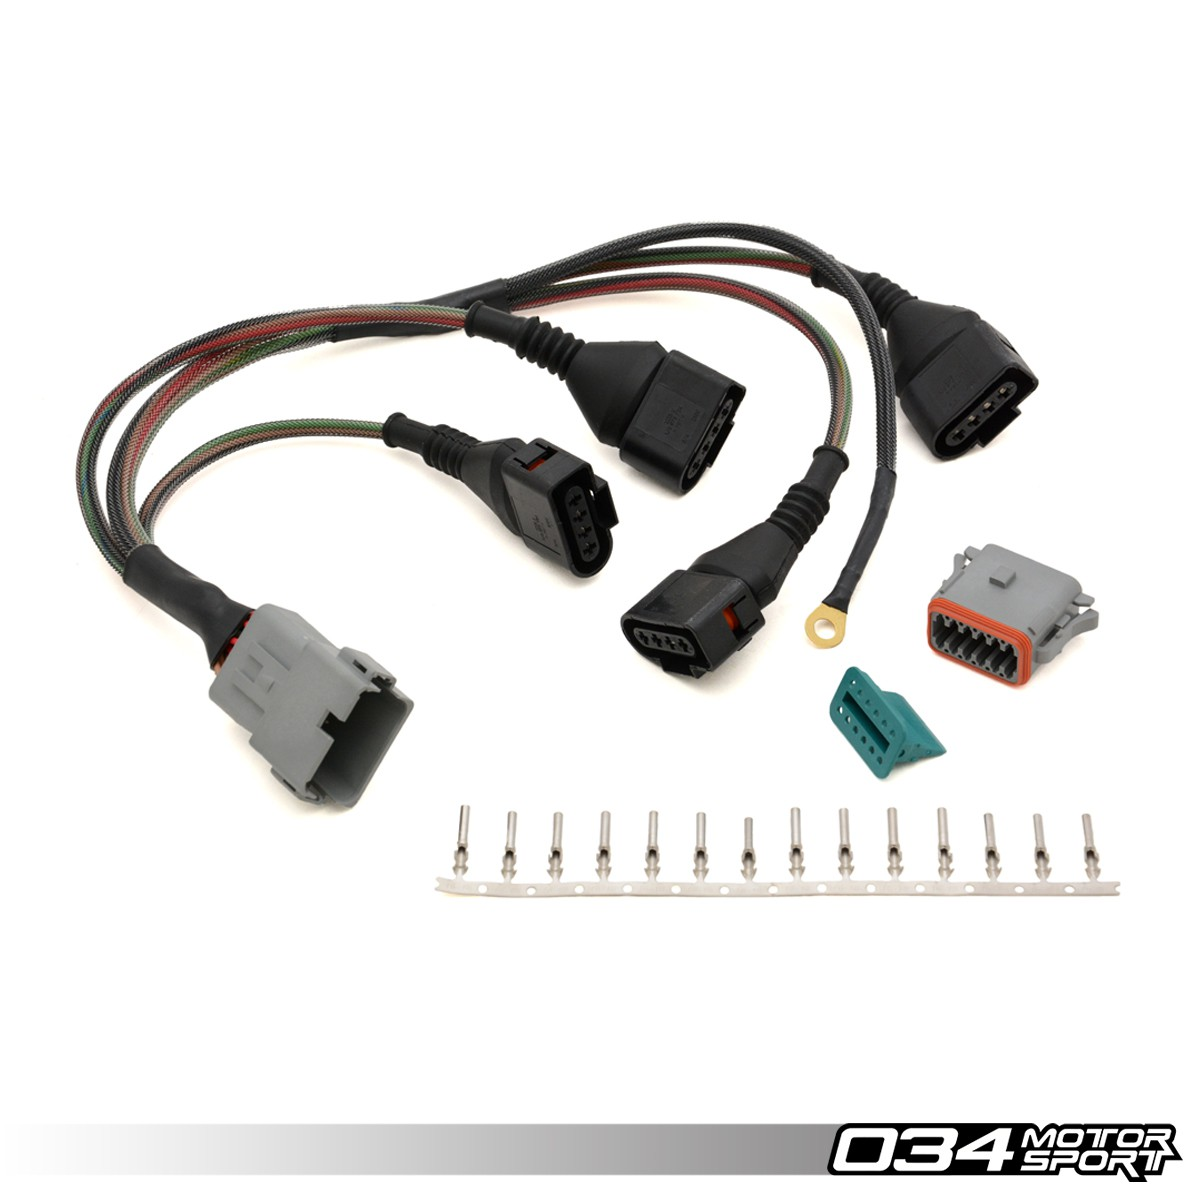 repair update harness audi volkswagen 18t with 4 wire coils 034motorsport 034 701 0004 2 repair update harness, audi volkswagen 1 8t with 4 wire coils how to repair a wiring harness at arjmand.co